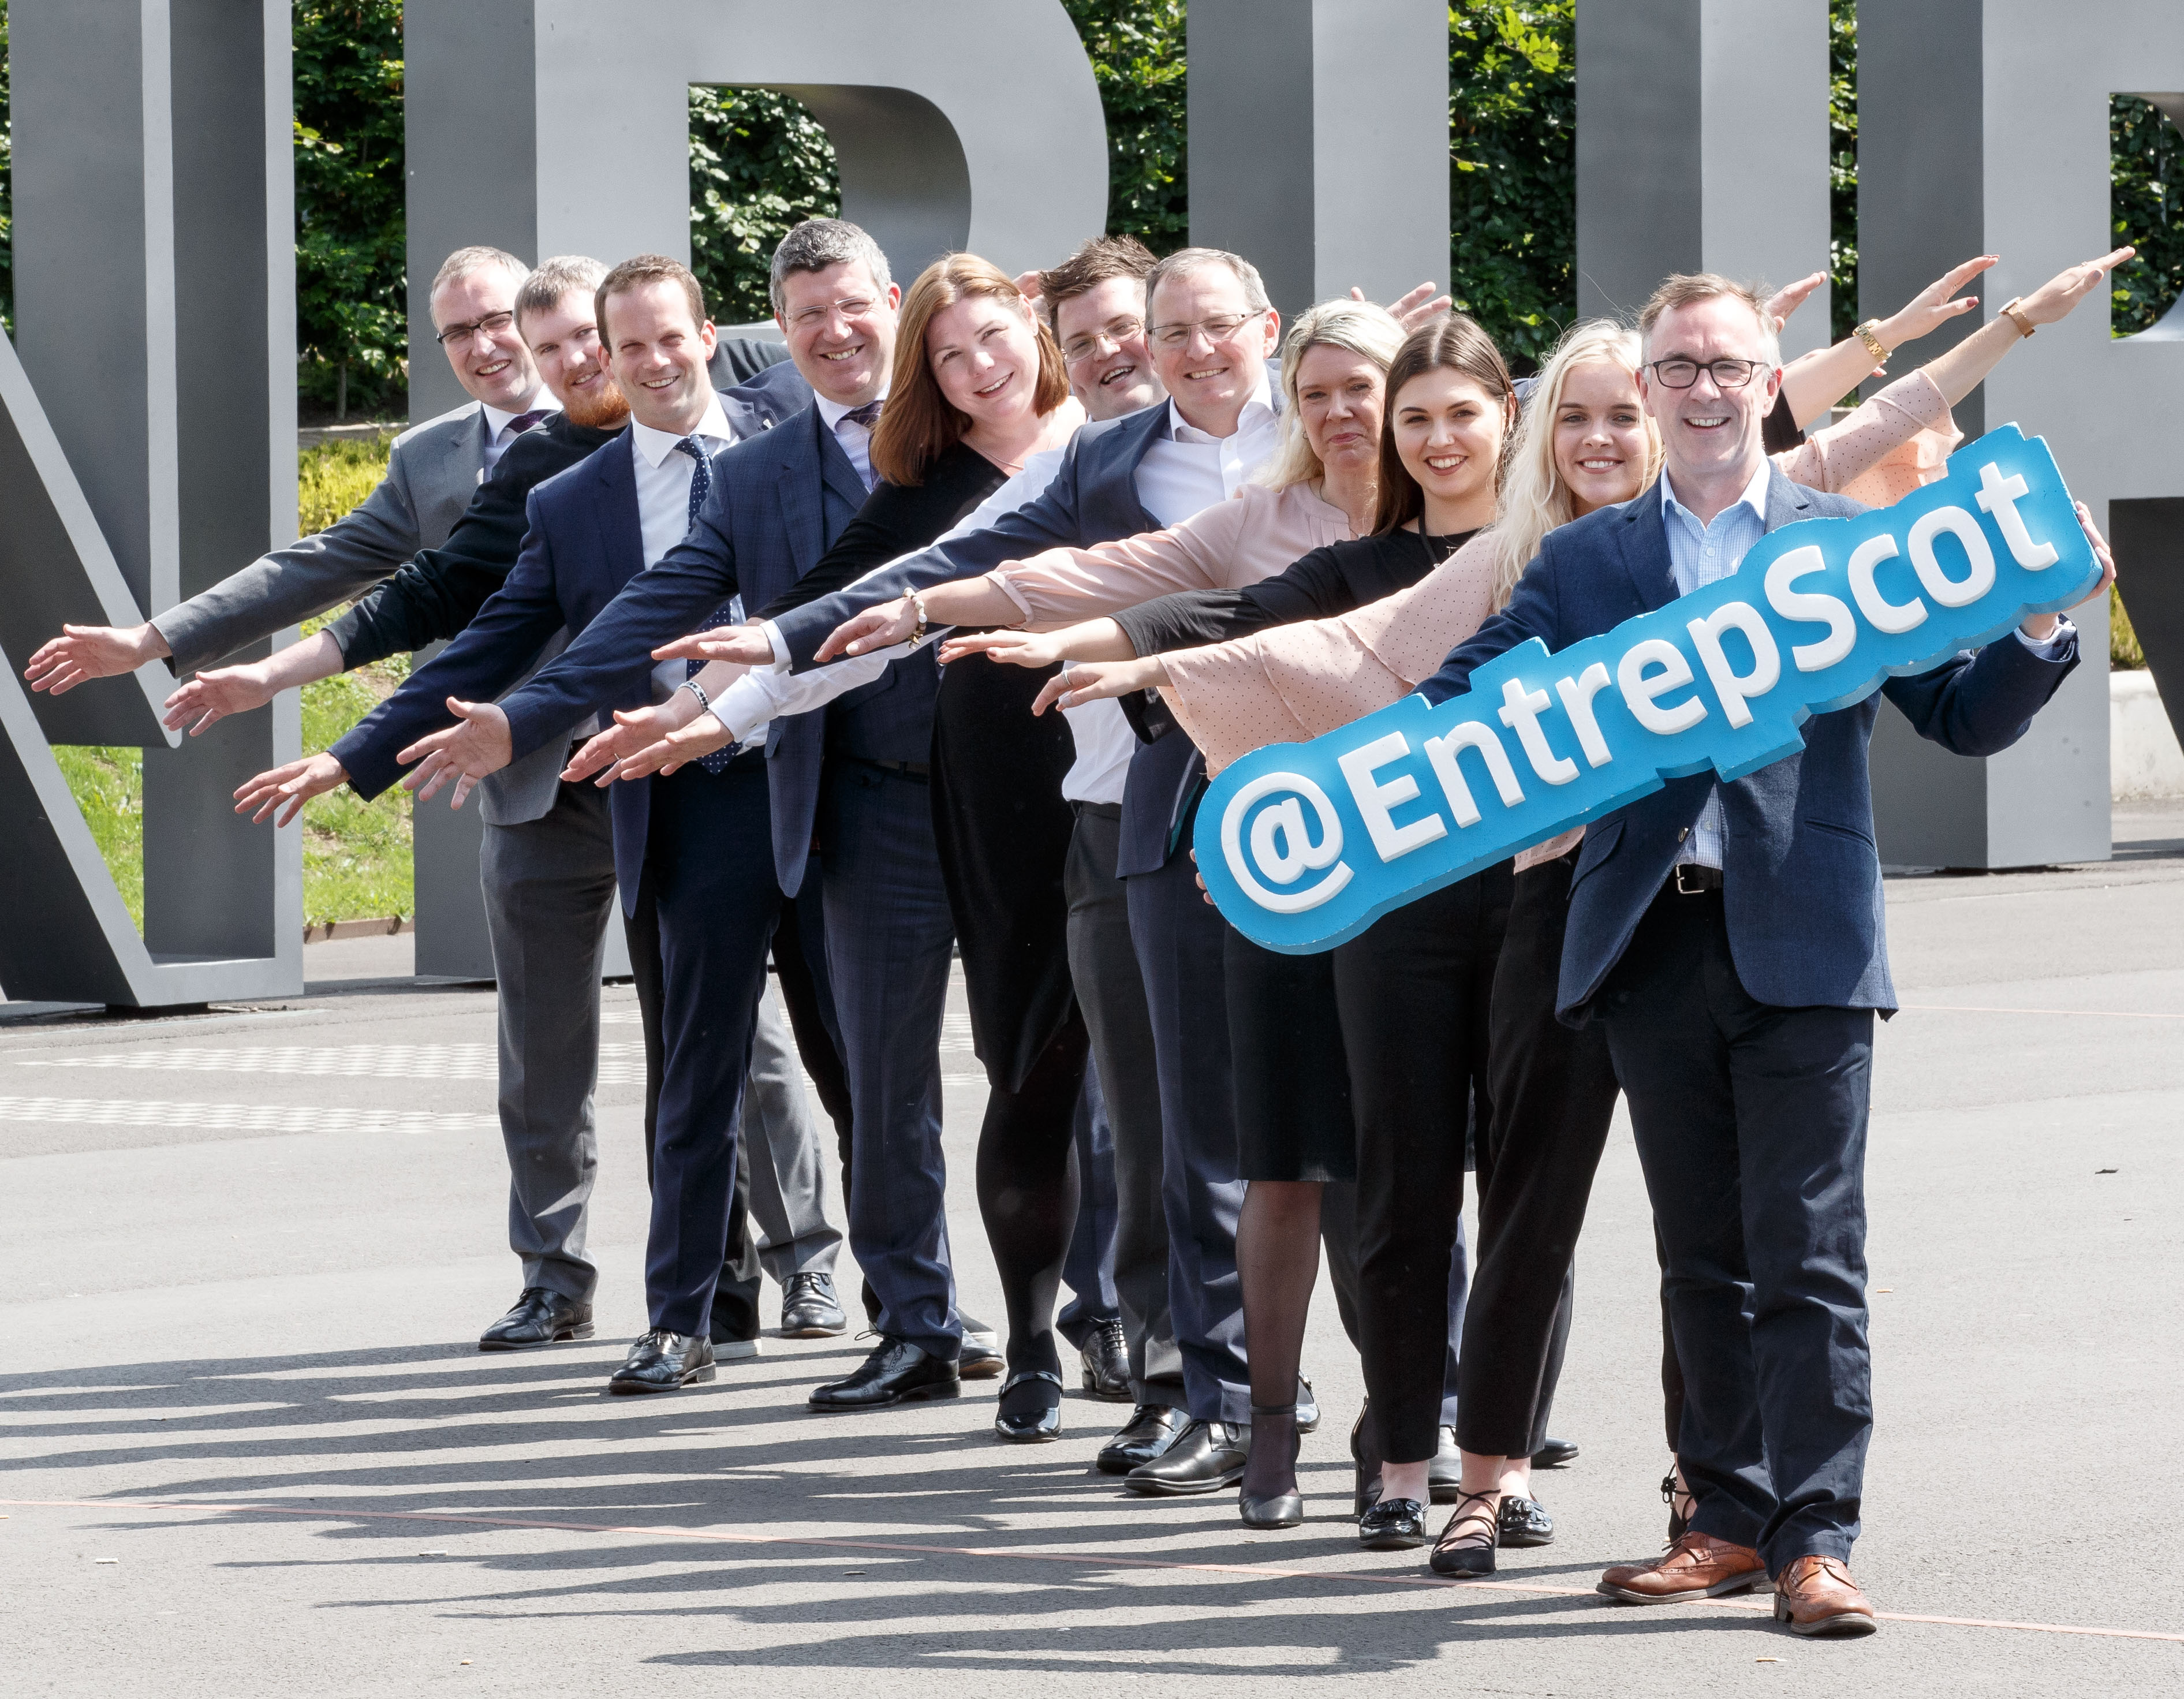 FREE PICTURES :  Entrepreneurial Scotland at Edinburgh Airport. Picture Robert Perry 2017 Please credit photo to Robert Perry Image is free to use in connection with the promotion of the above company or organisation. 'Permissions for ALL other uses need to be sought and payment make be required. Note to Editors:  This image is free to be used editorially in the promotion of the above company or organisation.  Without prejudice ALL other licences without prior consent will be deemed a breach of copyright under the 1988. Copyright Design and Patents Act  and will be subject to payment or legal action, where appropriate. www.robertperry.co.uk NB -This image is not to be distributed without the prior consent of the copyright holder. in using this image you agree to abide by terms and conditions as stated in this caption. All monies payable to Robert Perry (PLEASE DO NOT REMOVE THIS CAPTION) This image is intended for Editorial use (e.g. news). Any commercial or promotional use requires additional clearance.  Copyright 2016 All rights protected. first use only contact details Robert Perry      07702 631 477 robertperryphotos@gmail.com         Robert Perry reserves the right to pursue unauthorised use of this image . If you violate my intellectual property you may be liable for  damages, loss of income, and profits you derive from the use of this image.